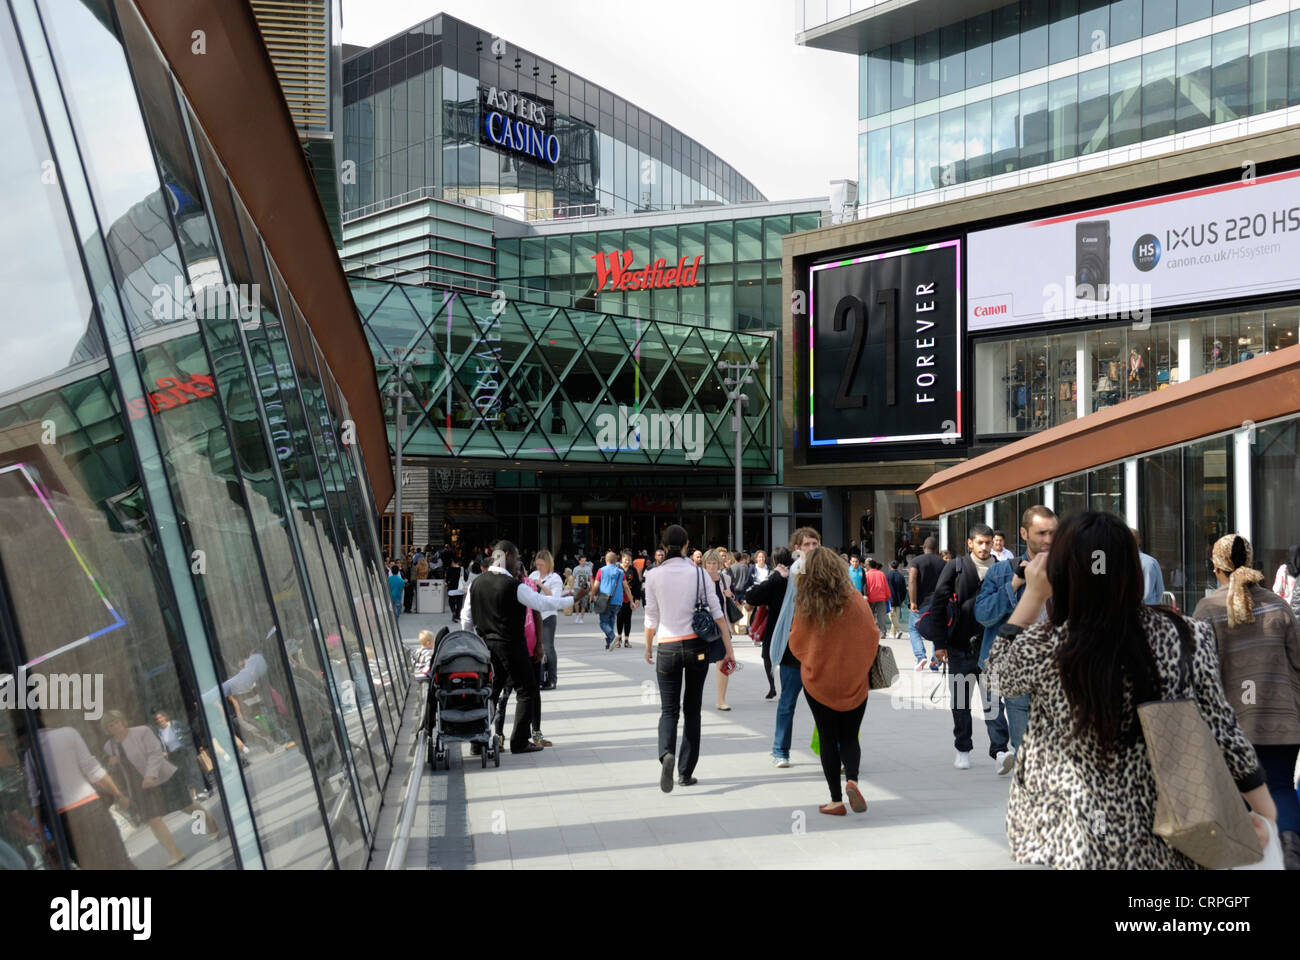 Westfield London is one of two Westfield malls in London, the other is located in Stratford City. The Westfield Corporation is no stranger to the U.S., the corporation owns and operates 32 shopping malls in the U.S. in 8 states, including a mall at the reconstructed World Trade Center in New York City.